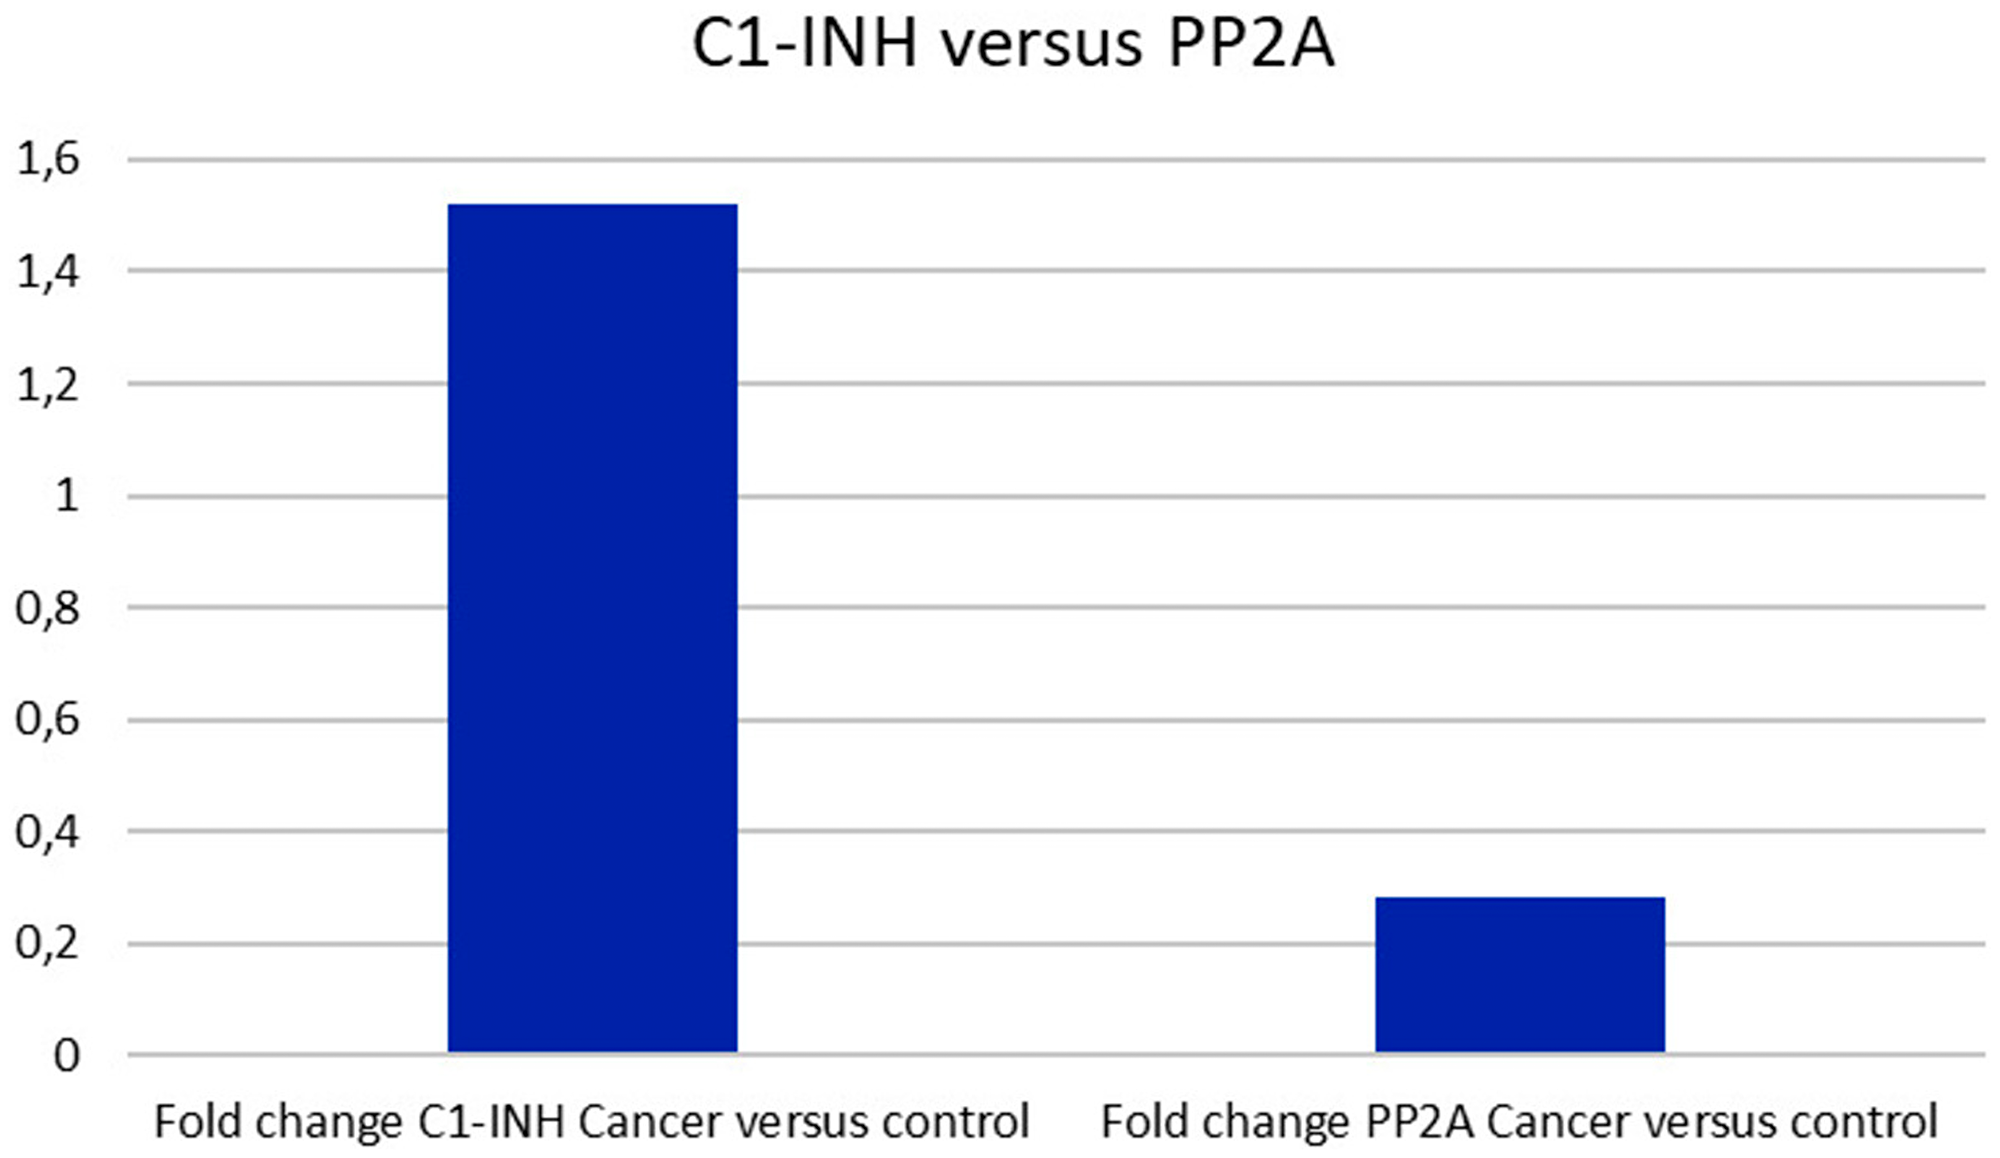 C1-INH versus PP2A expression.